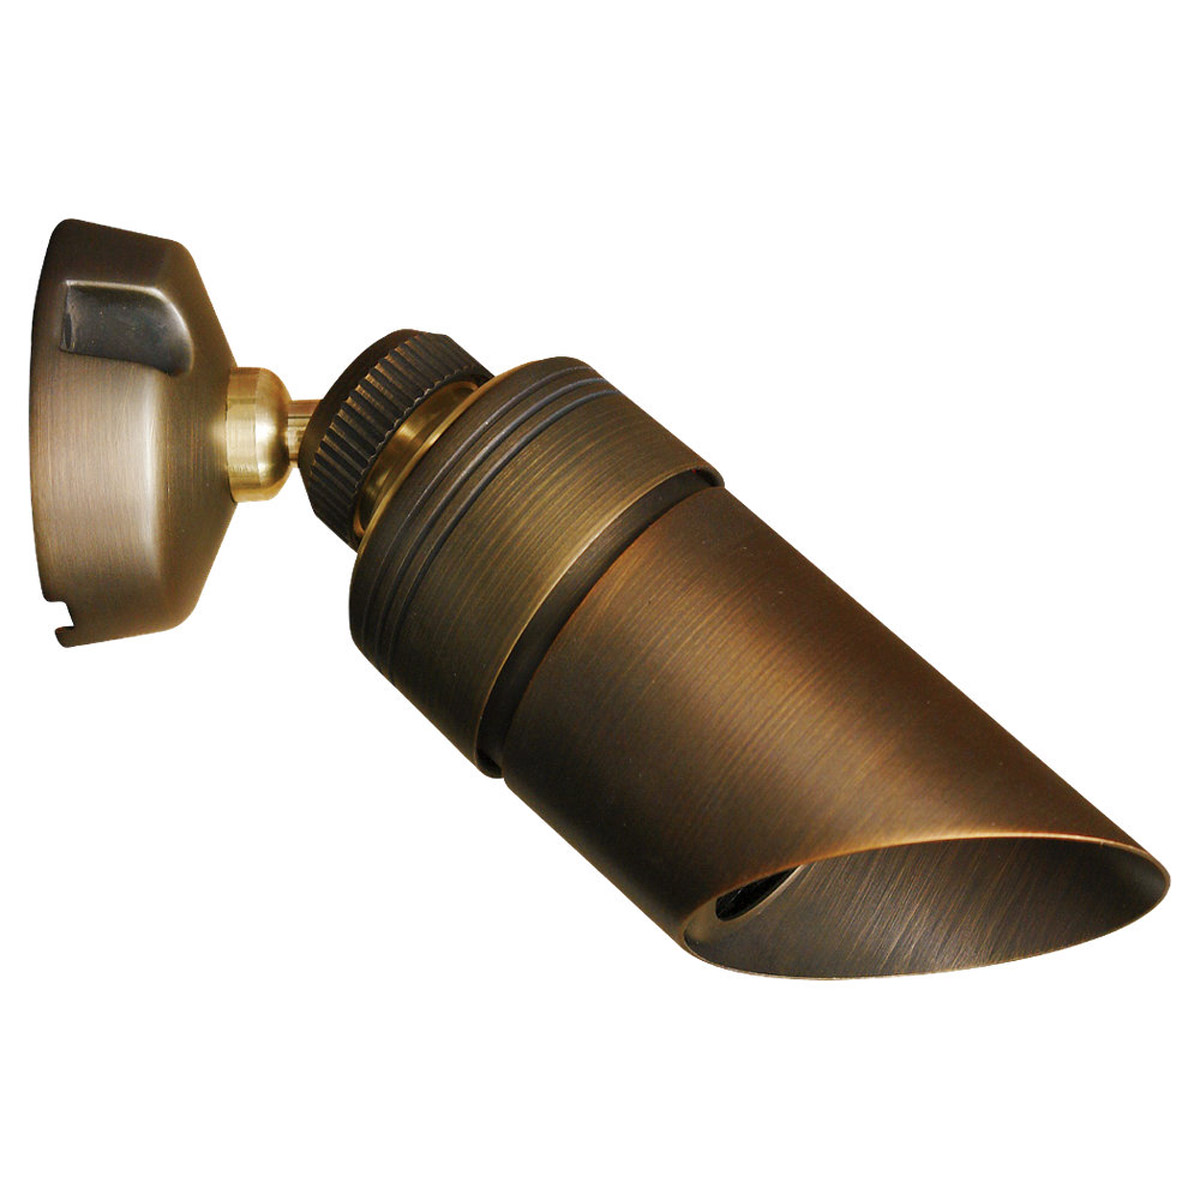 Sea Gull Lighting Meridian 1 Light Landscape Light in Weathered Brass 91107-147 photo